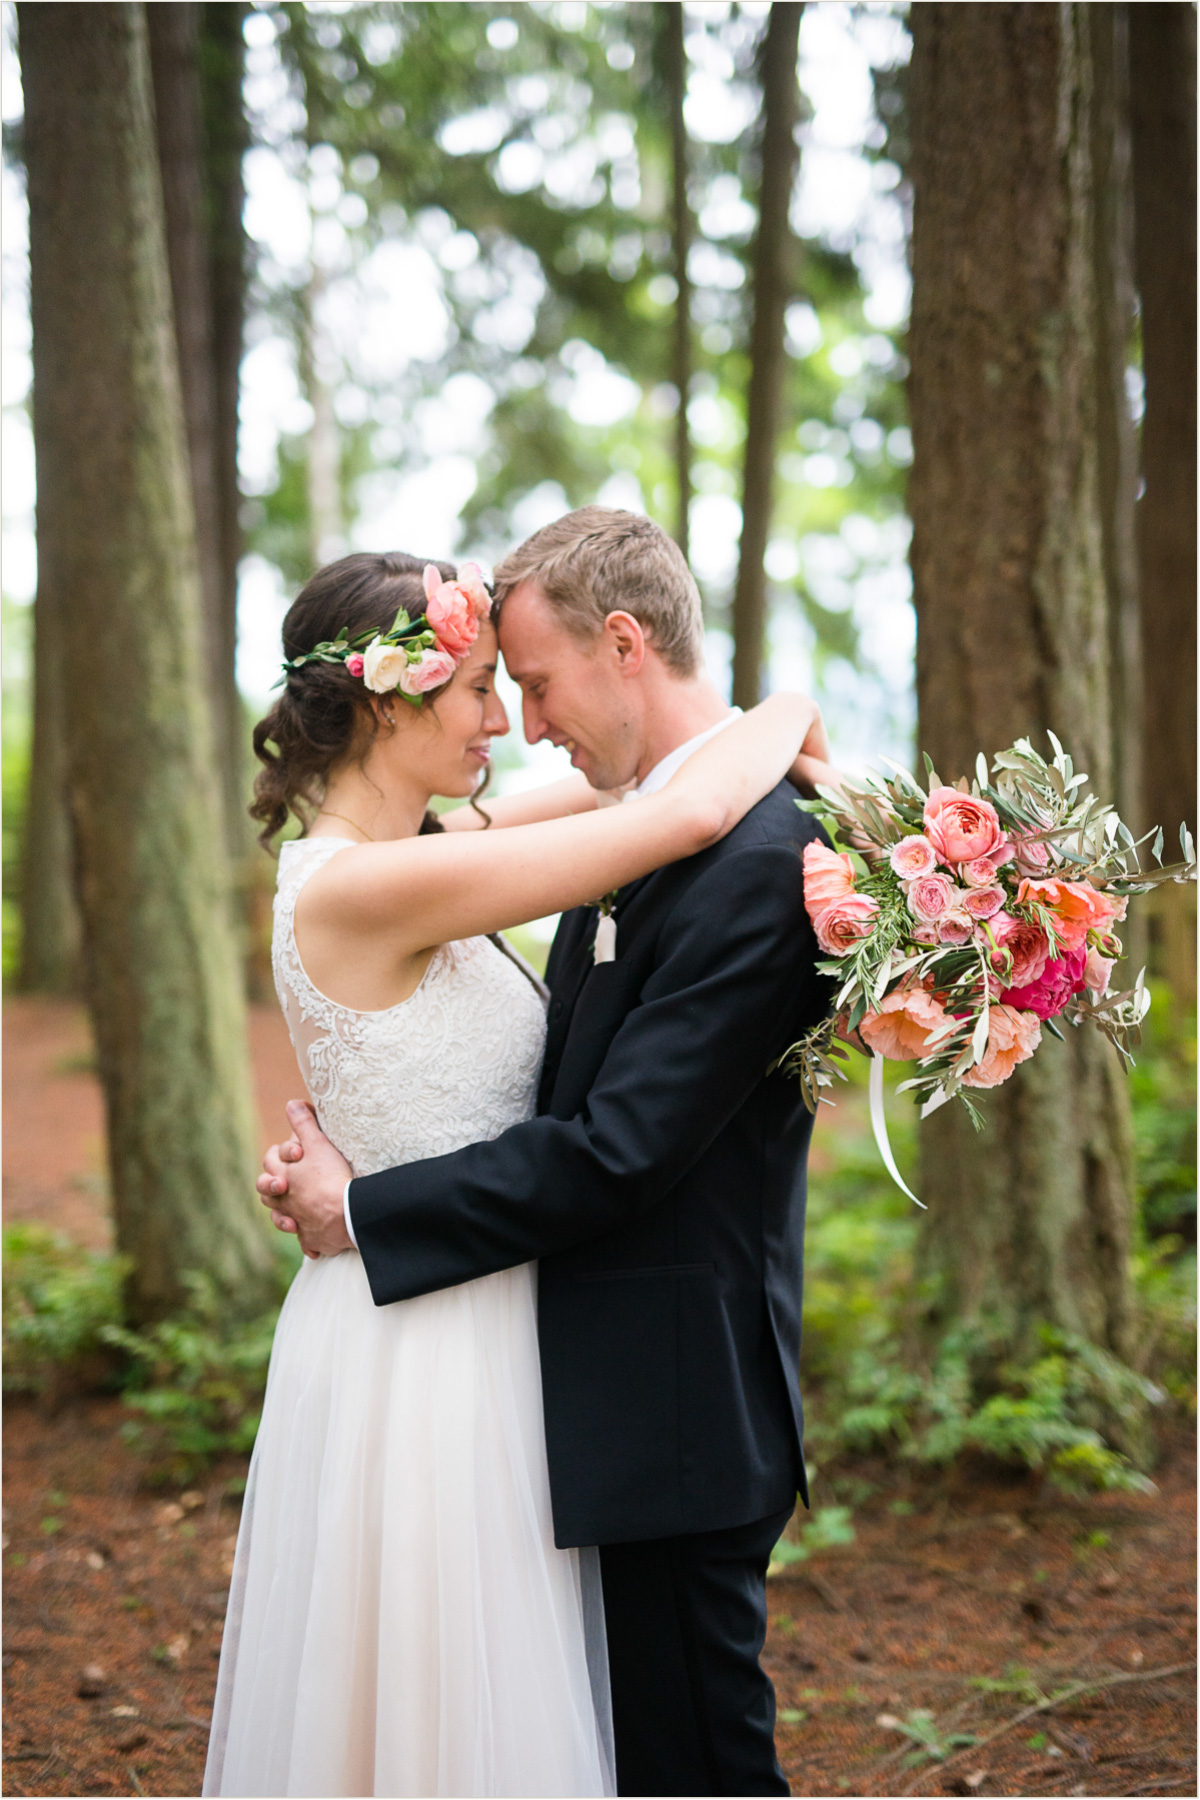 Woodsy Romantic Spring Wedding with Peonies